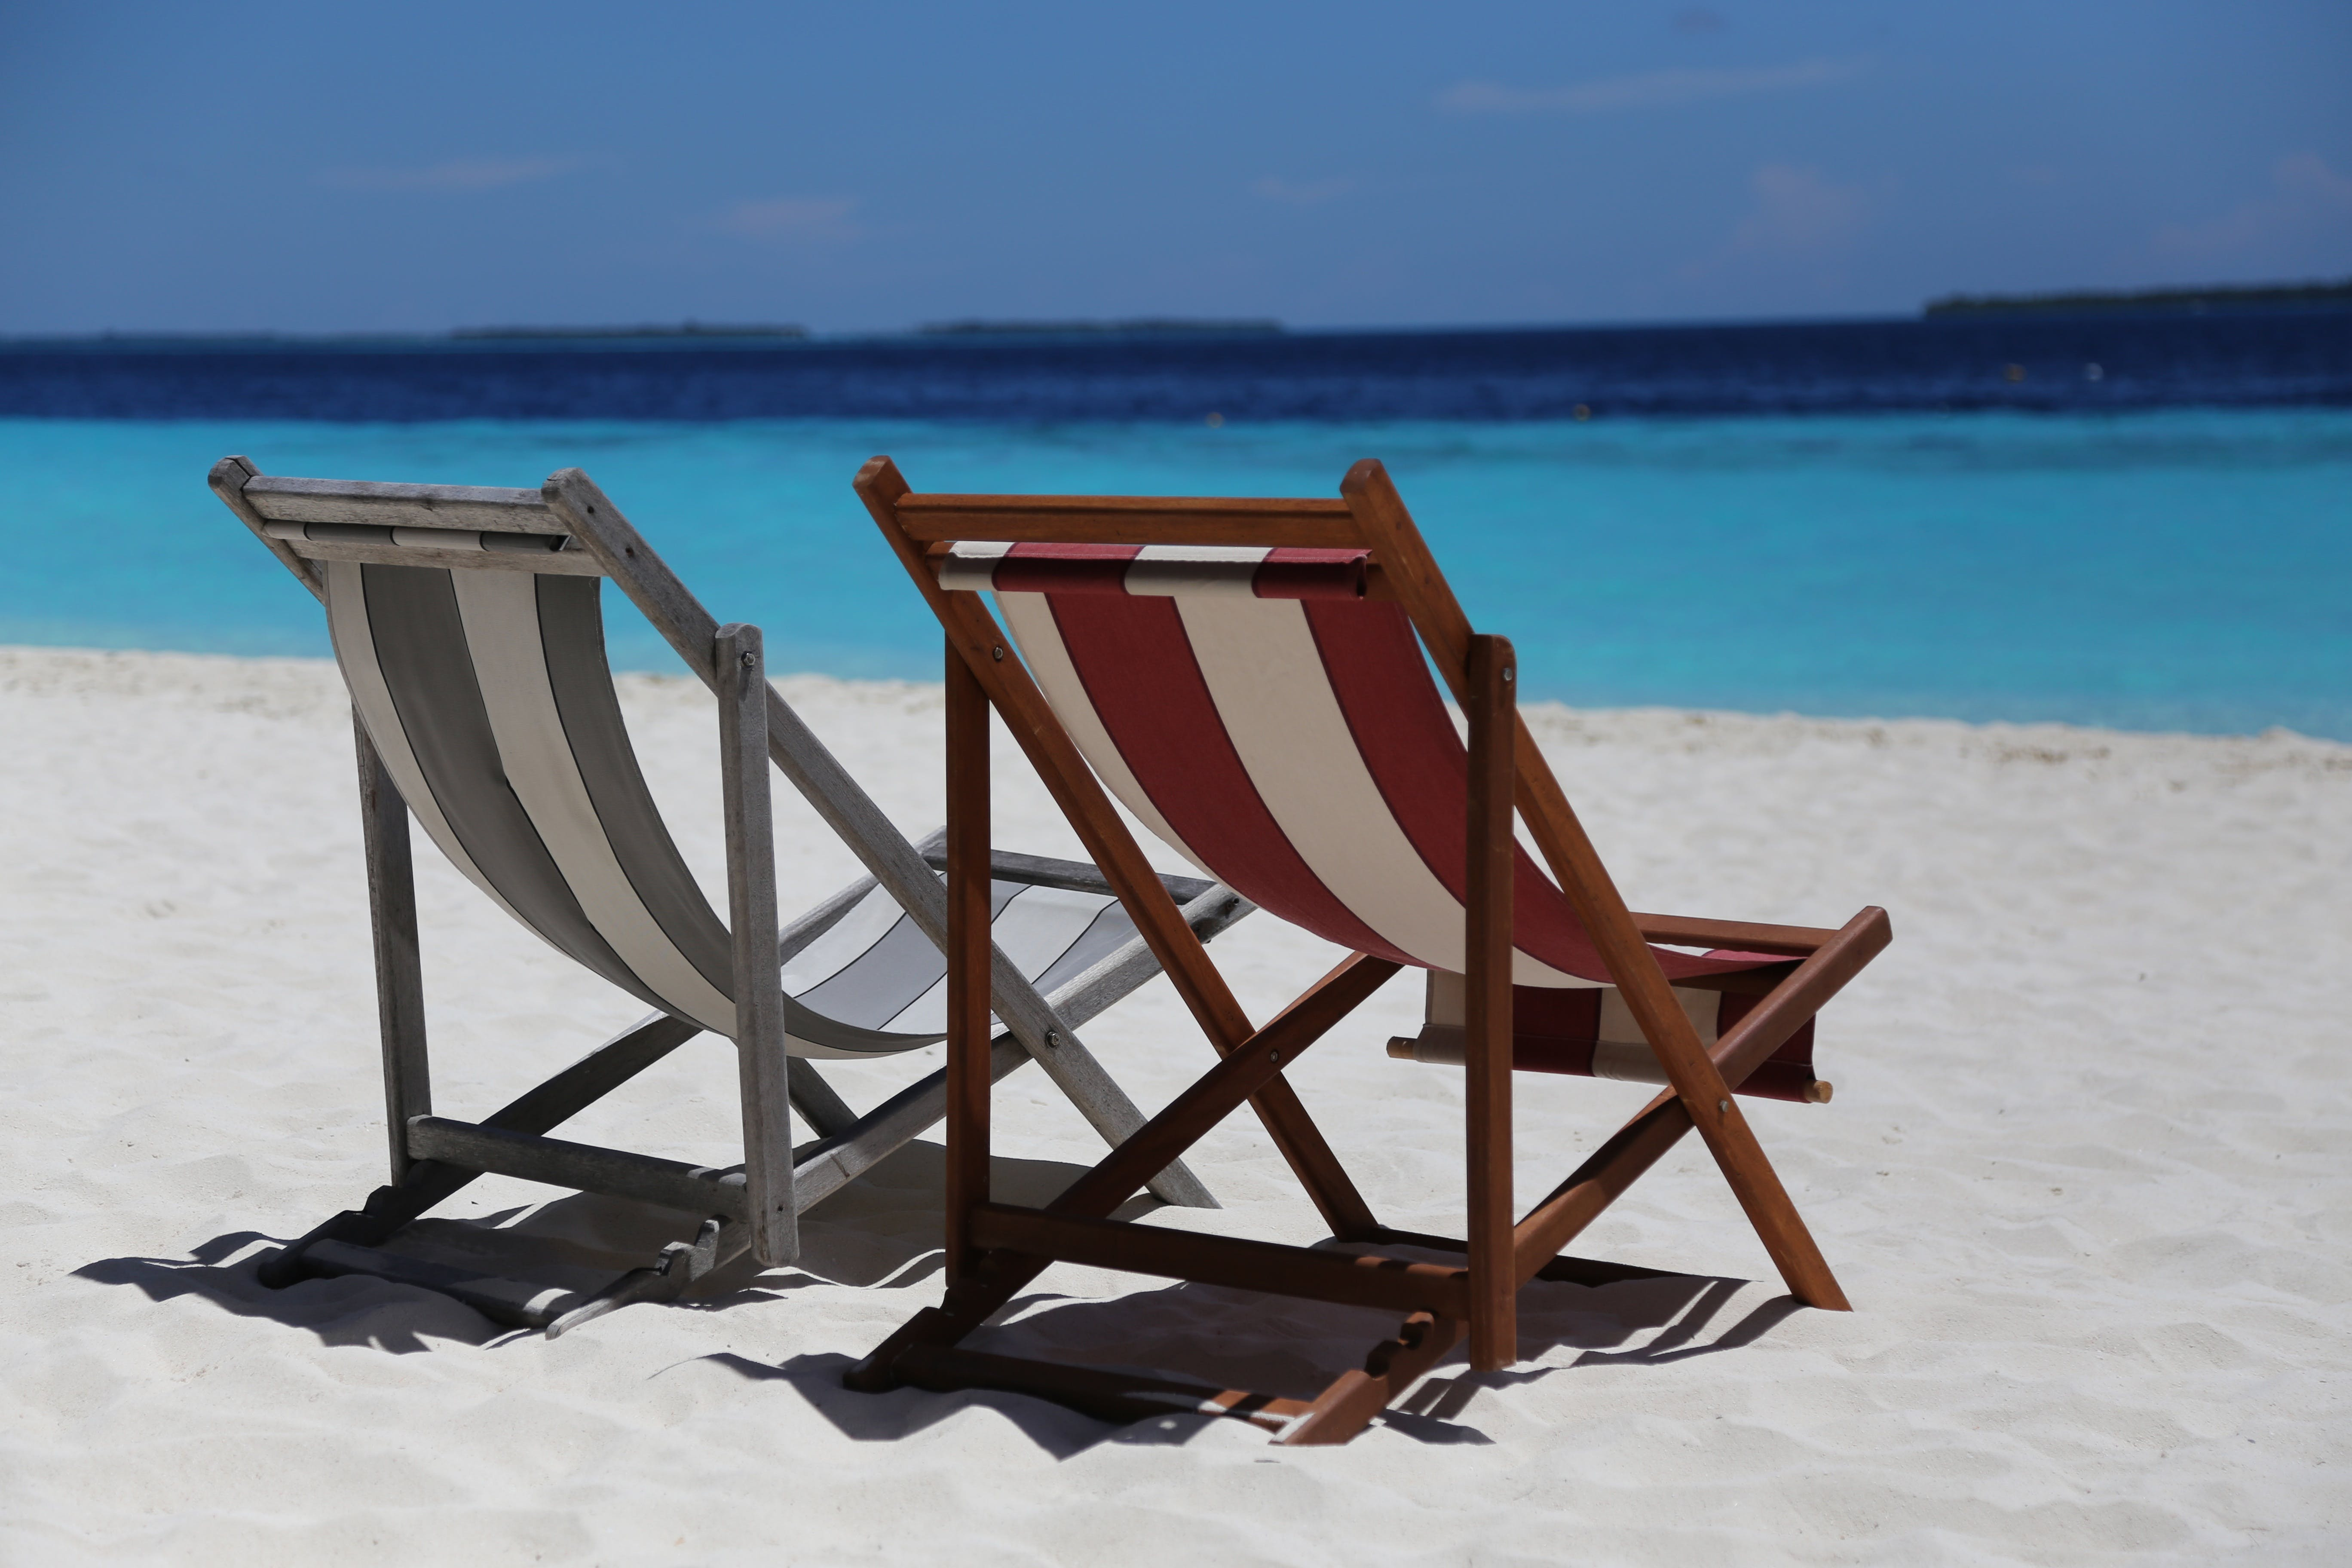 Two Folding Chairs on White Sand Seashore